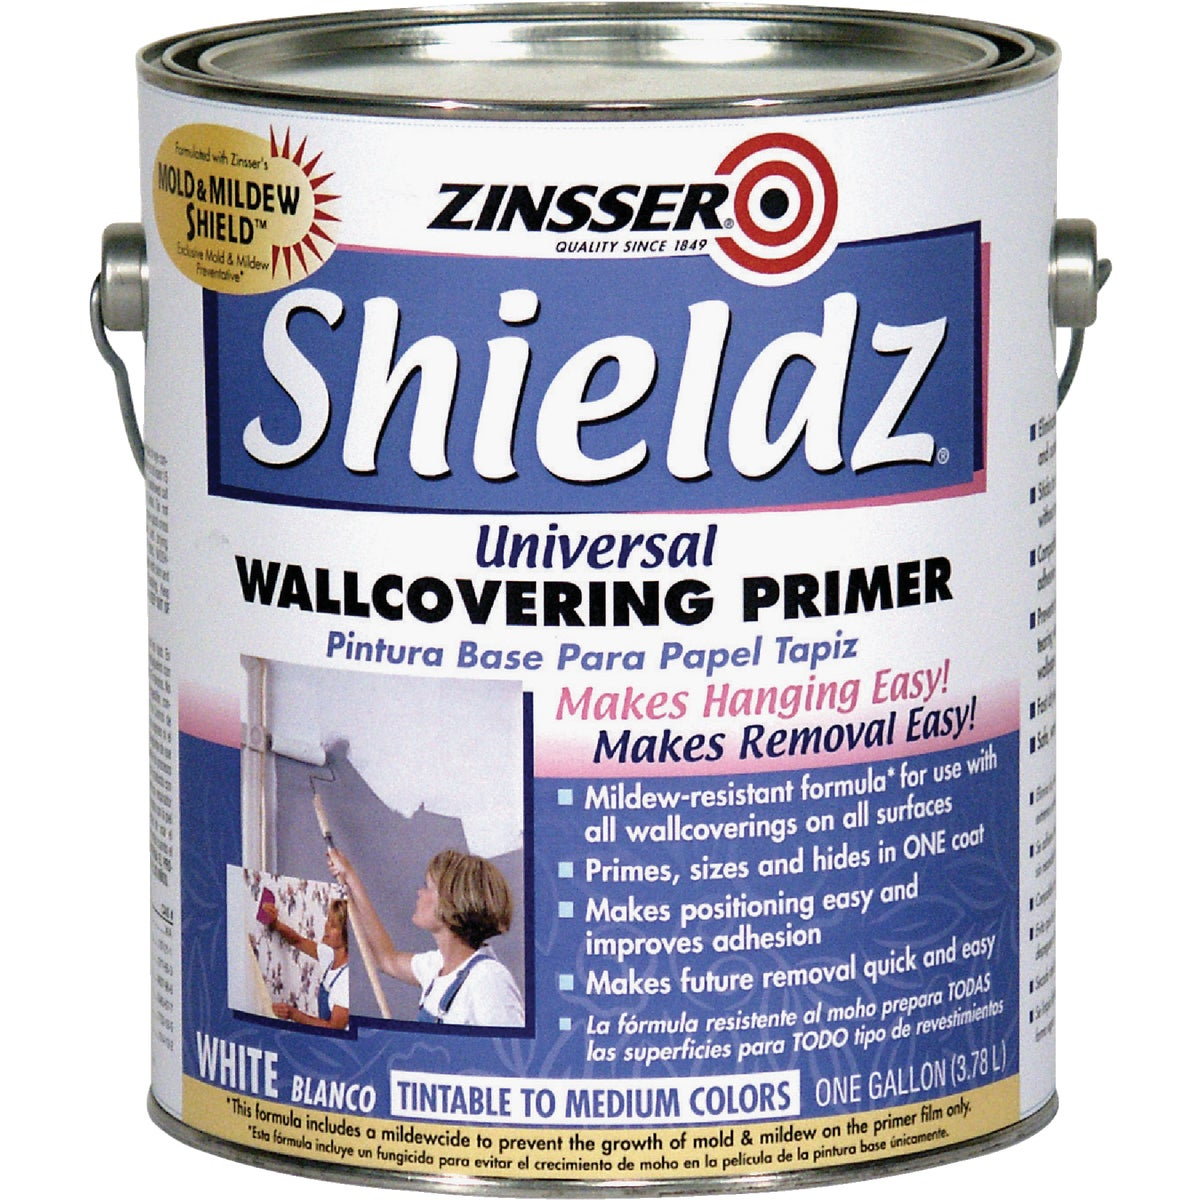 WHT LTX WALLPAPER PRIMER - 2501 by Rustoleum